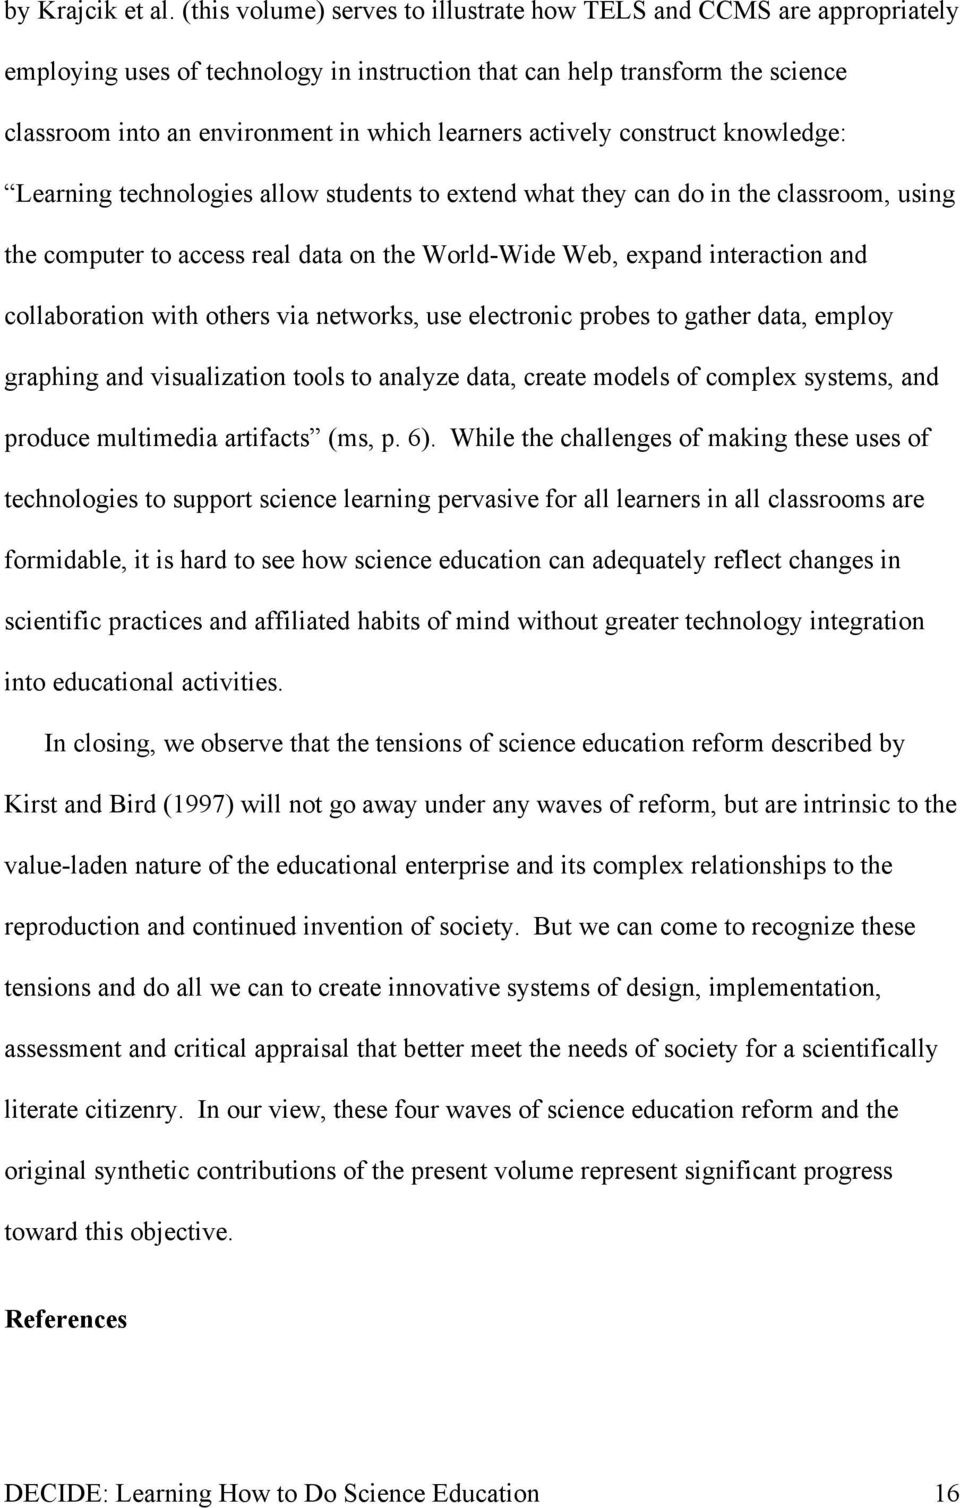 actively construct knowledge: Learning technologies allow students to extend what they can do in the classroom, using the computer to access real data on the World-Wide Web, expand interaction and